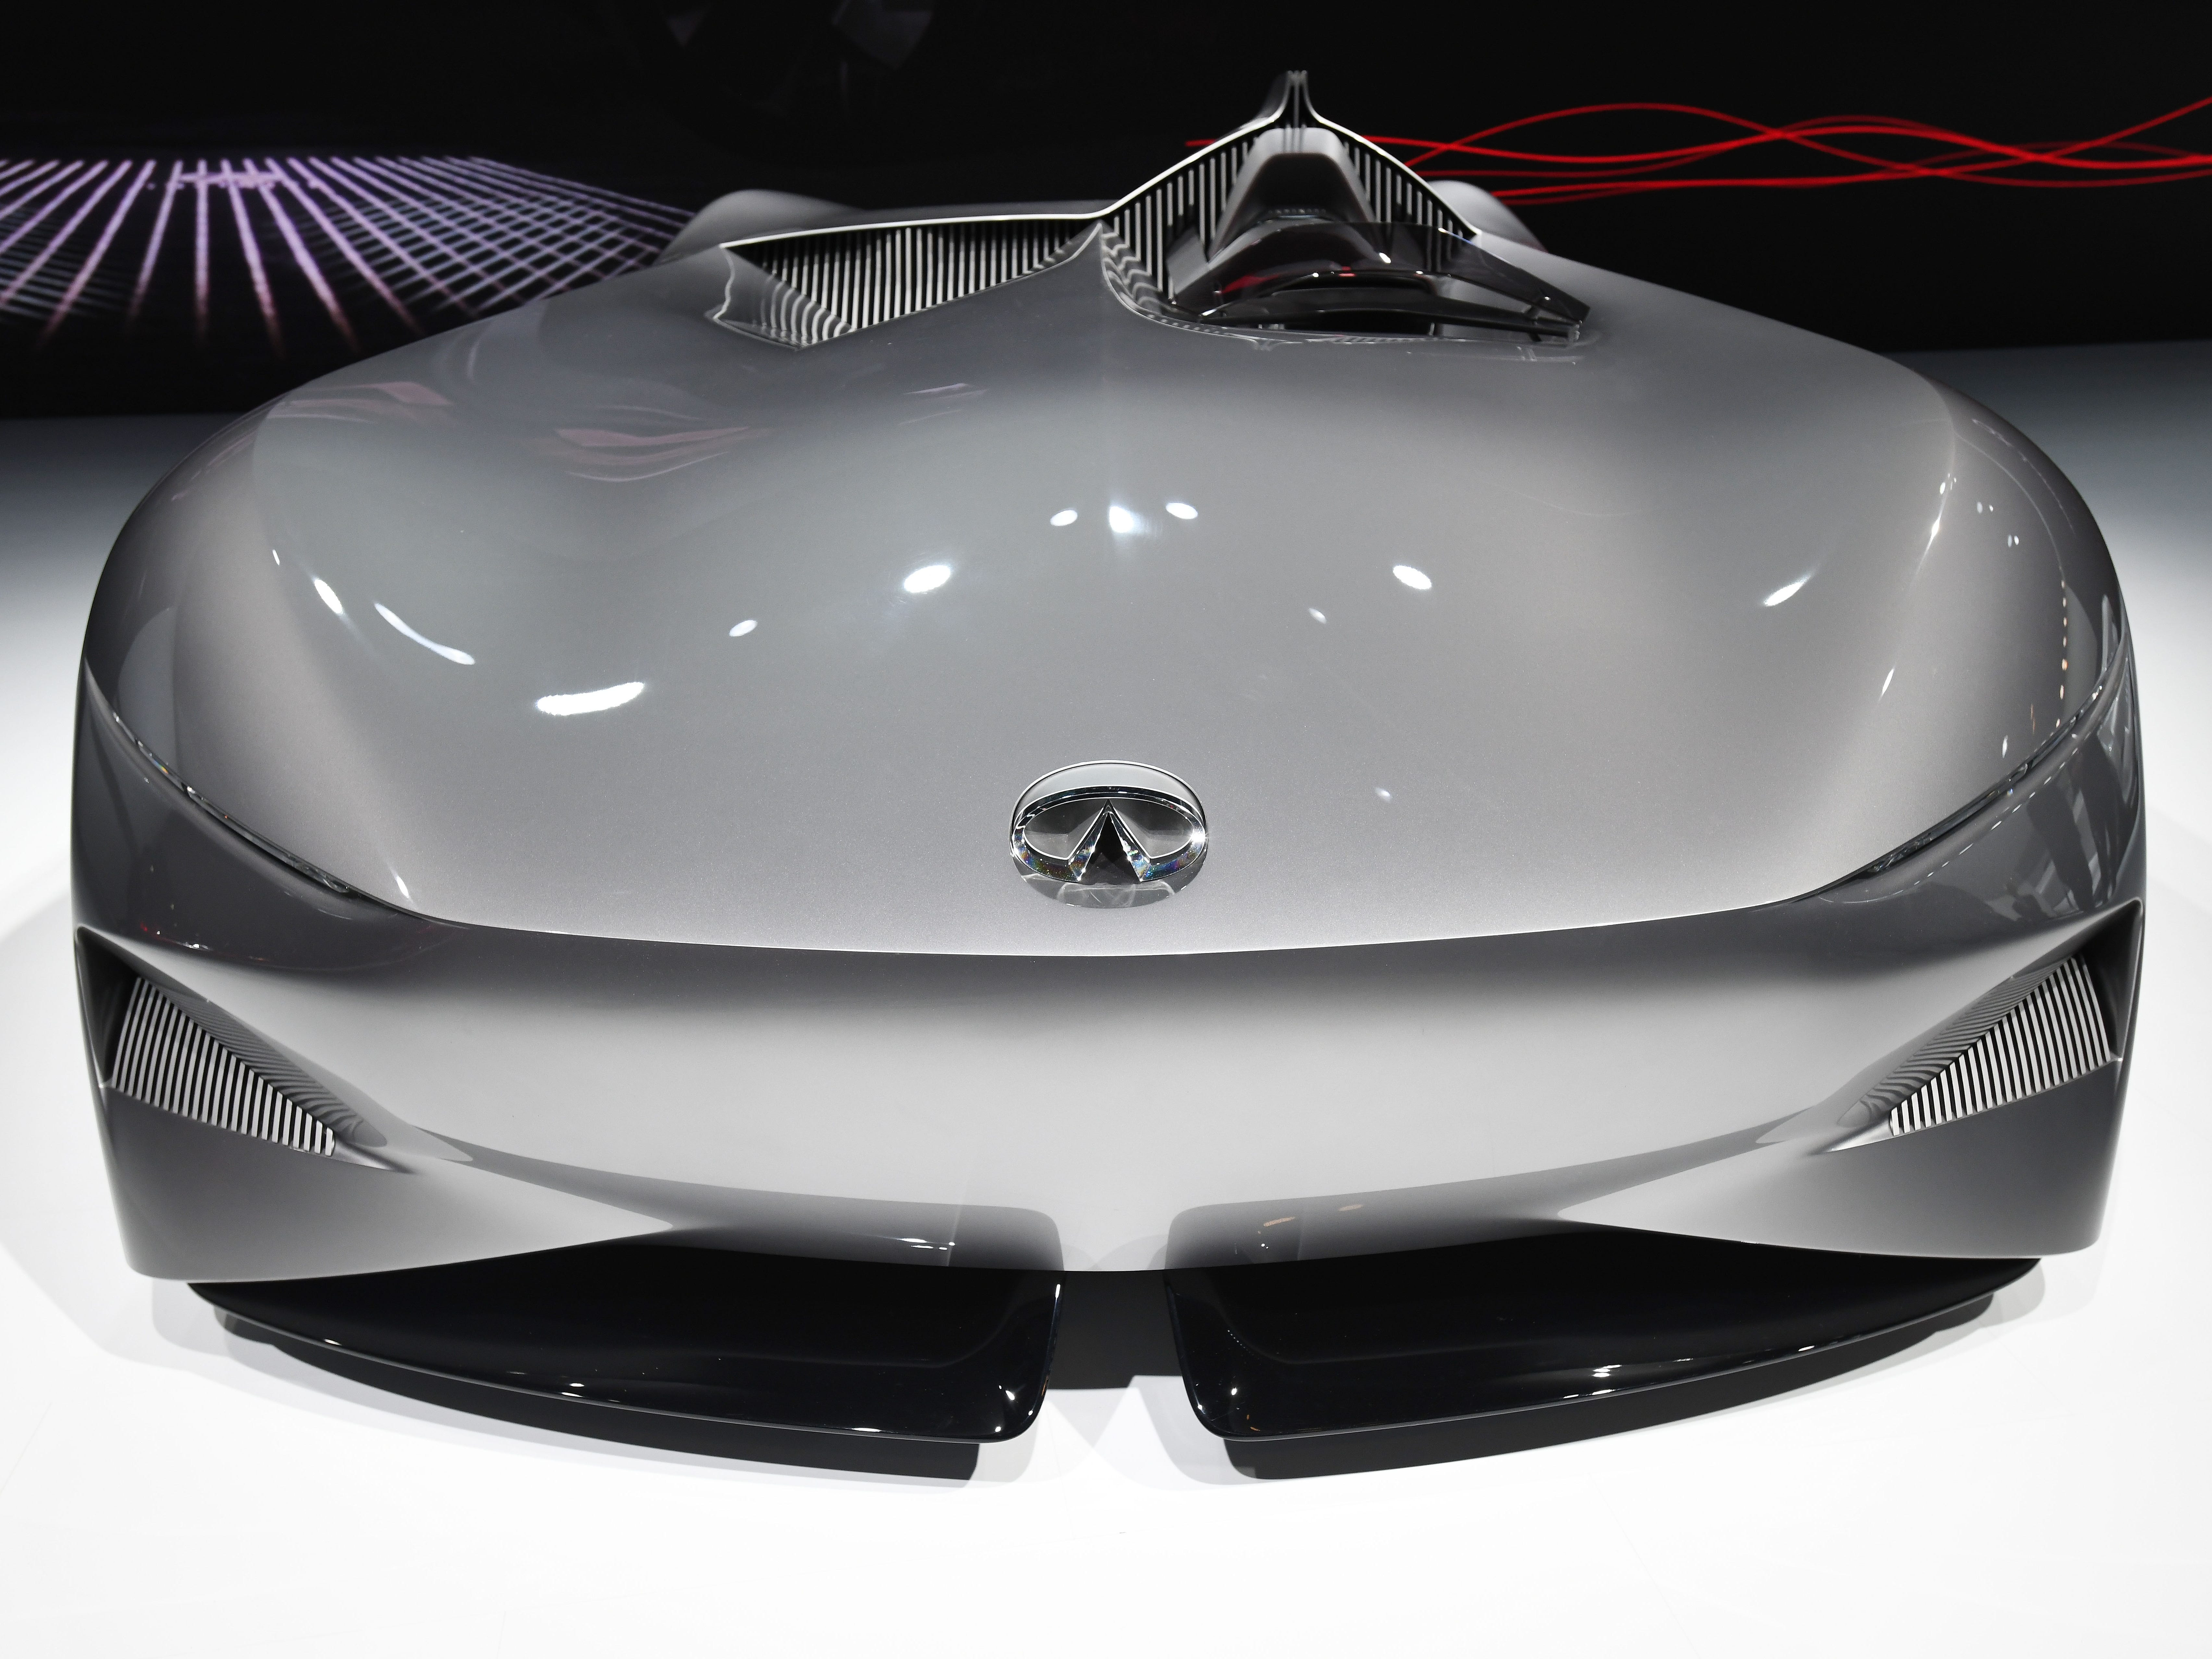 The Infiniti Prototype 10 Concept has a  single-seat cockpit with a low seating position, with only the driver's head peeking above the broad front end.